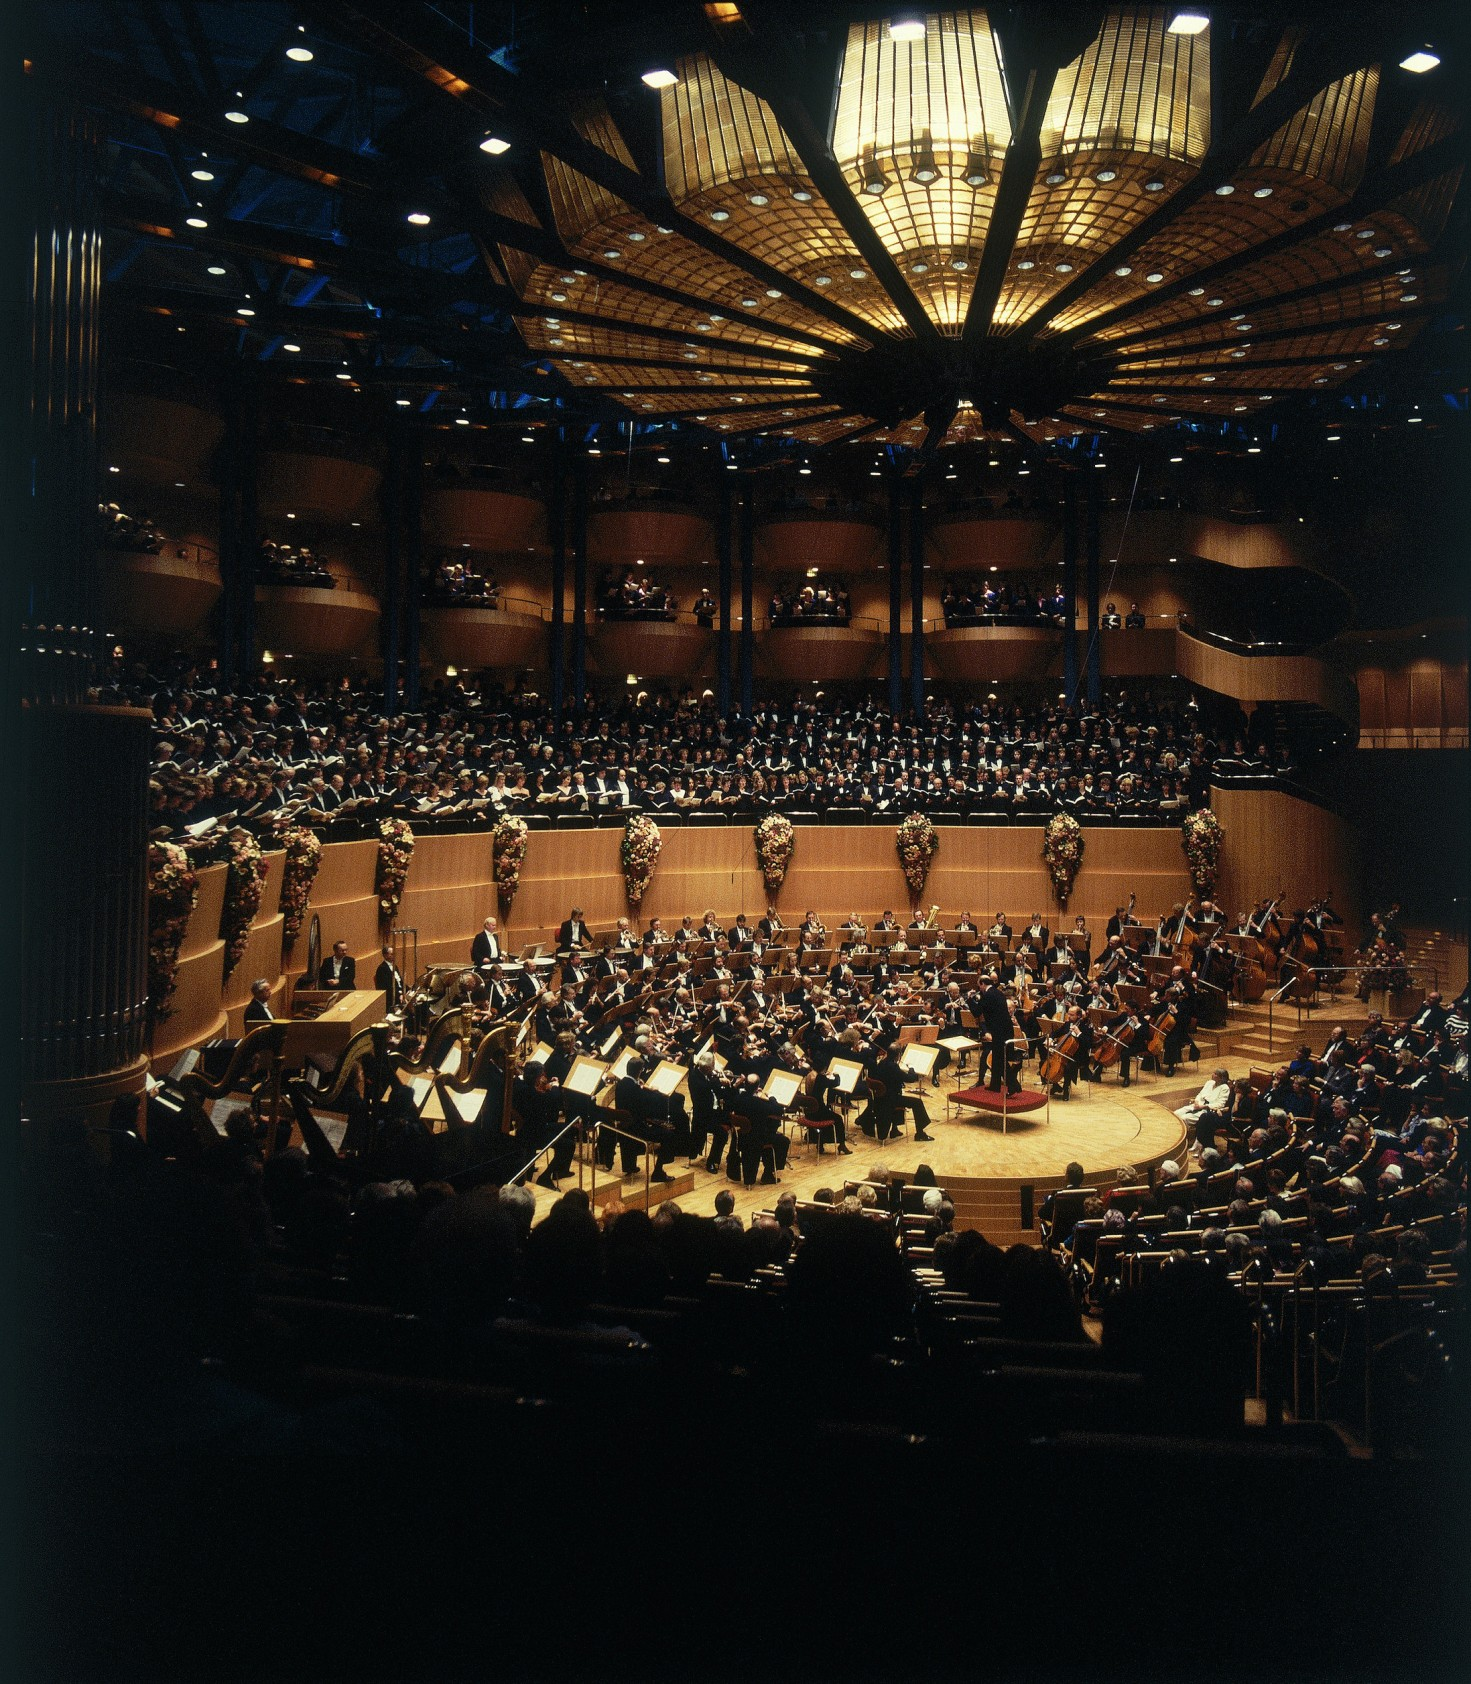 1986 opening of Cologne Philharmonie with Mahler 8